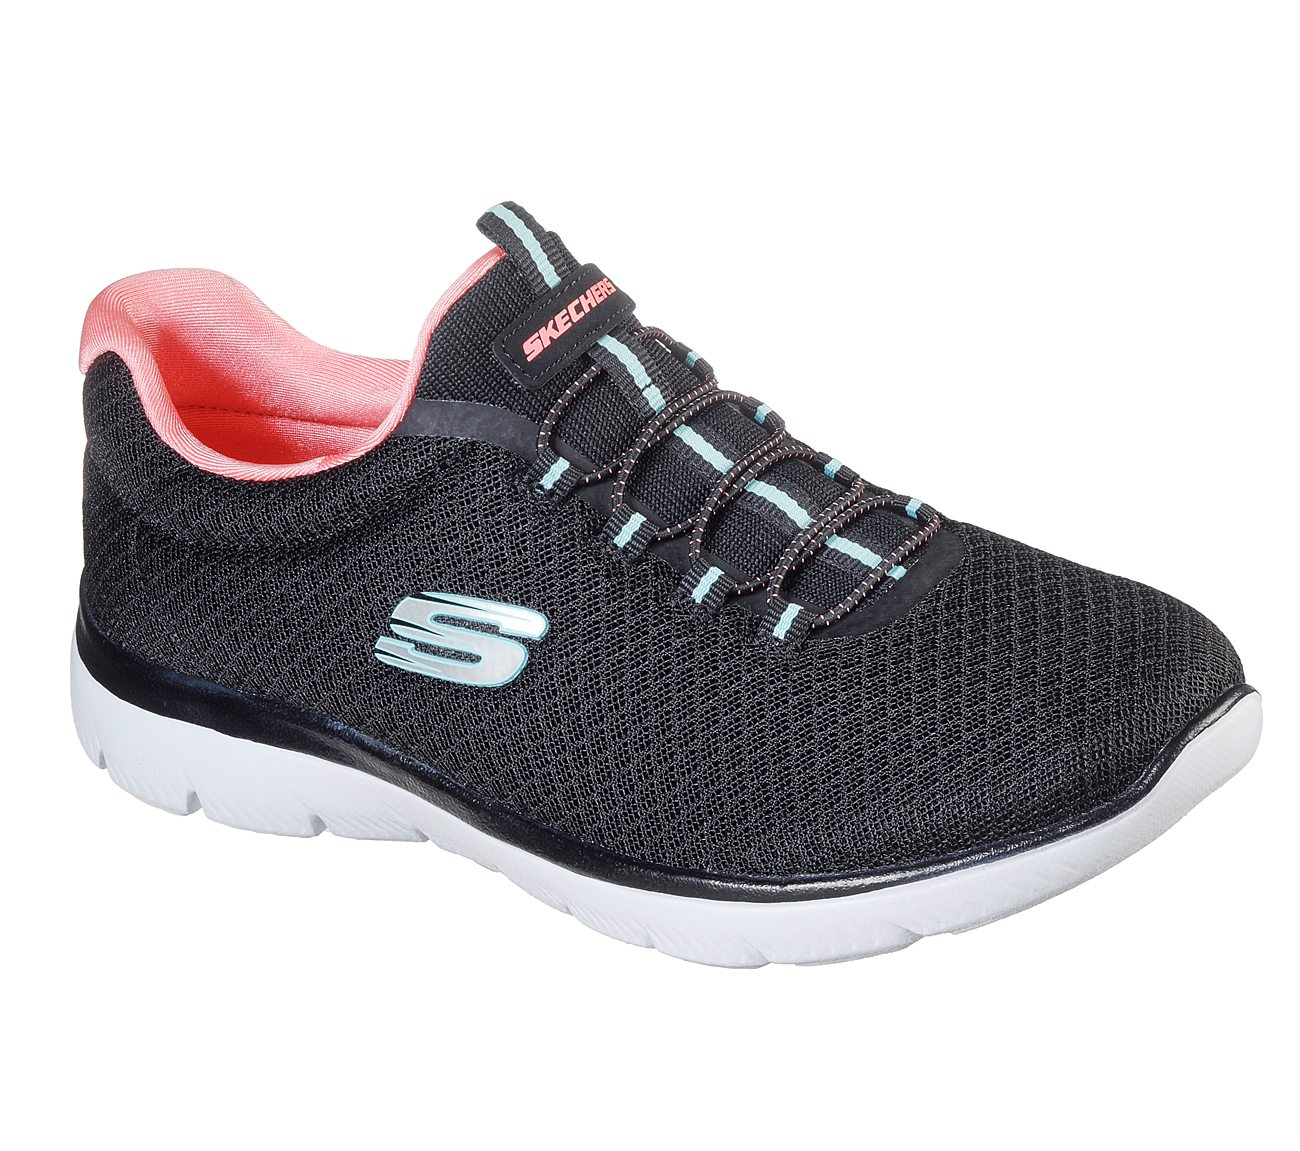 6f3a6b3468 Buy SKECHERS Summits Sport Shoes only $55.00